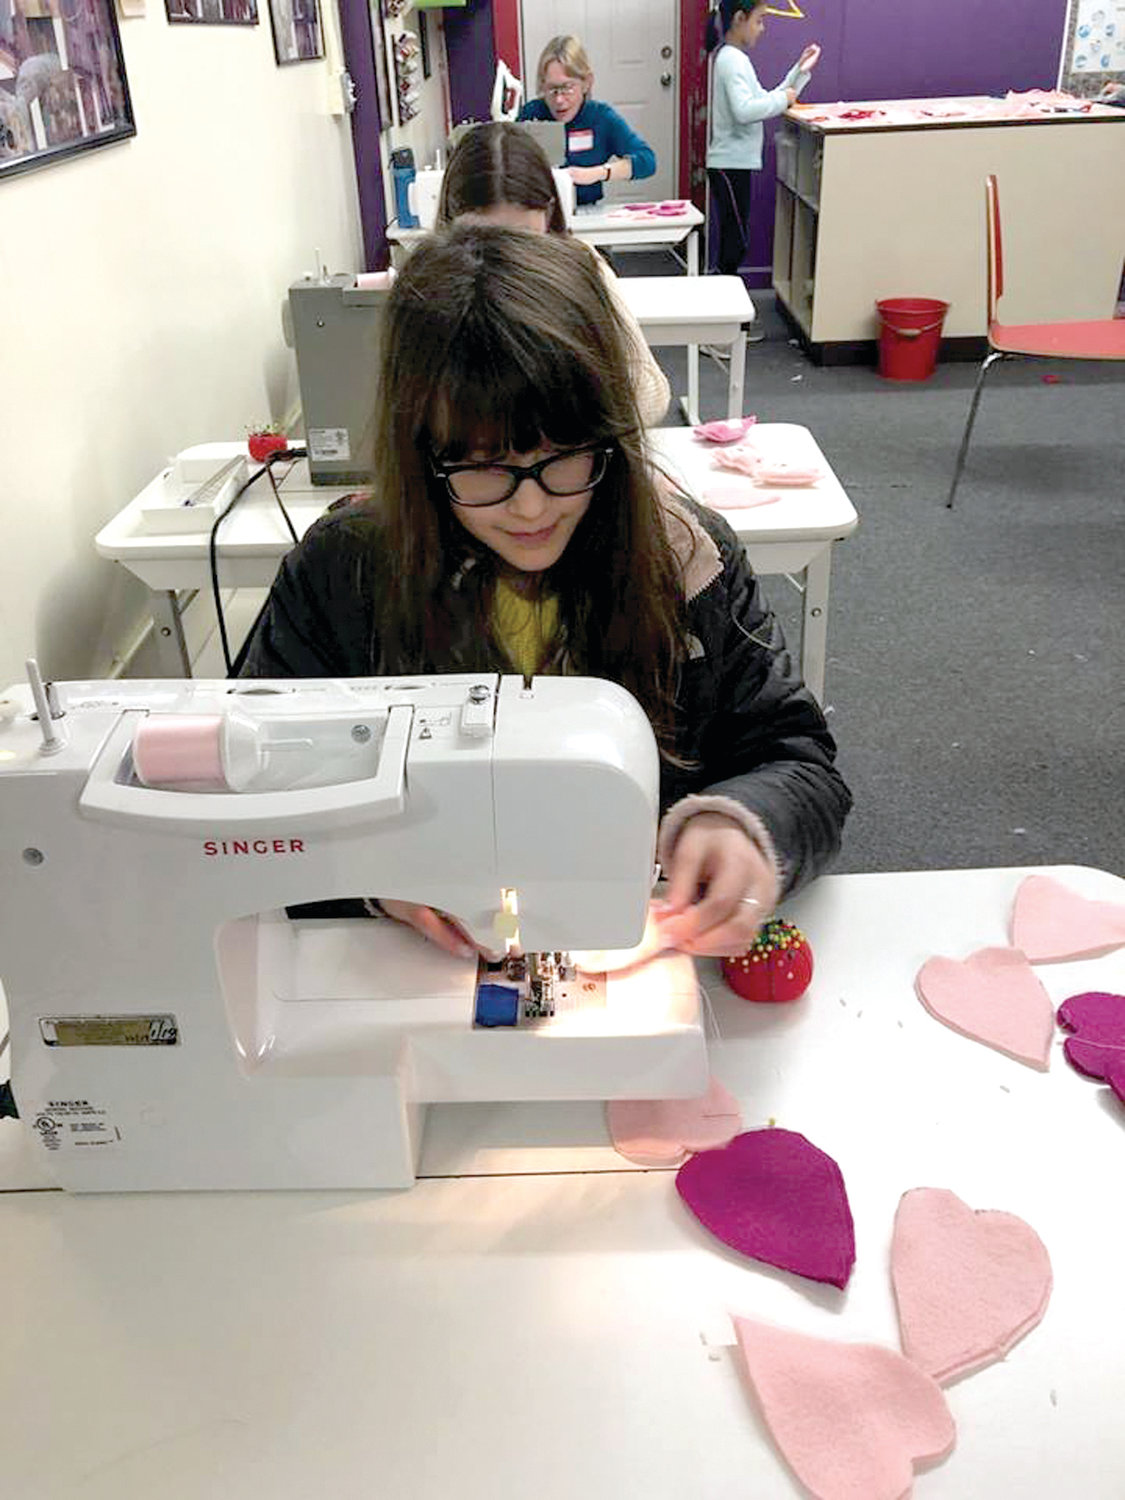 165 HEARTS LATER: Dozens of participants gathered together to create nearly 200 hand warmers at the sewing school in just under three hours.